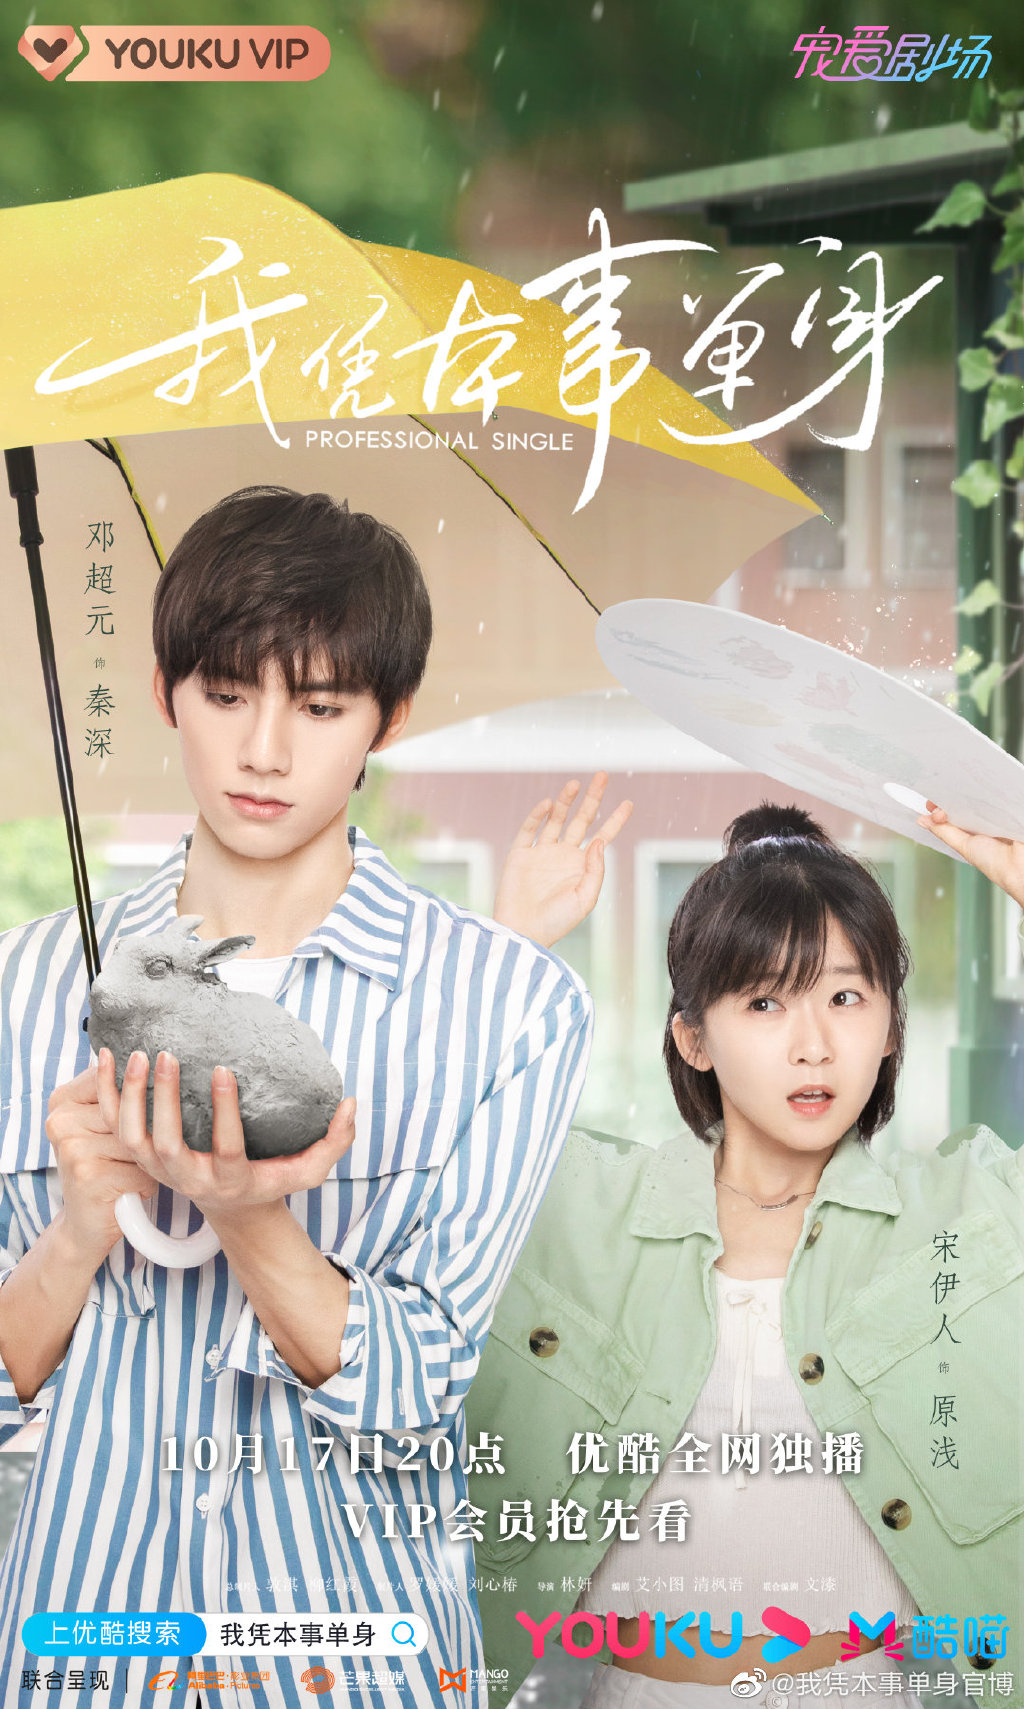 Professional Single Chinese Drama Poster